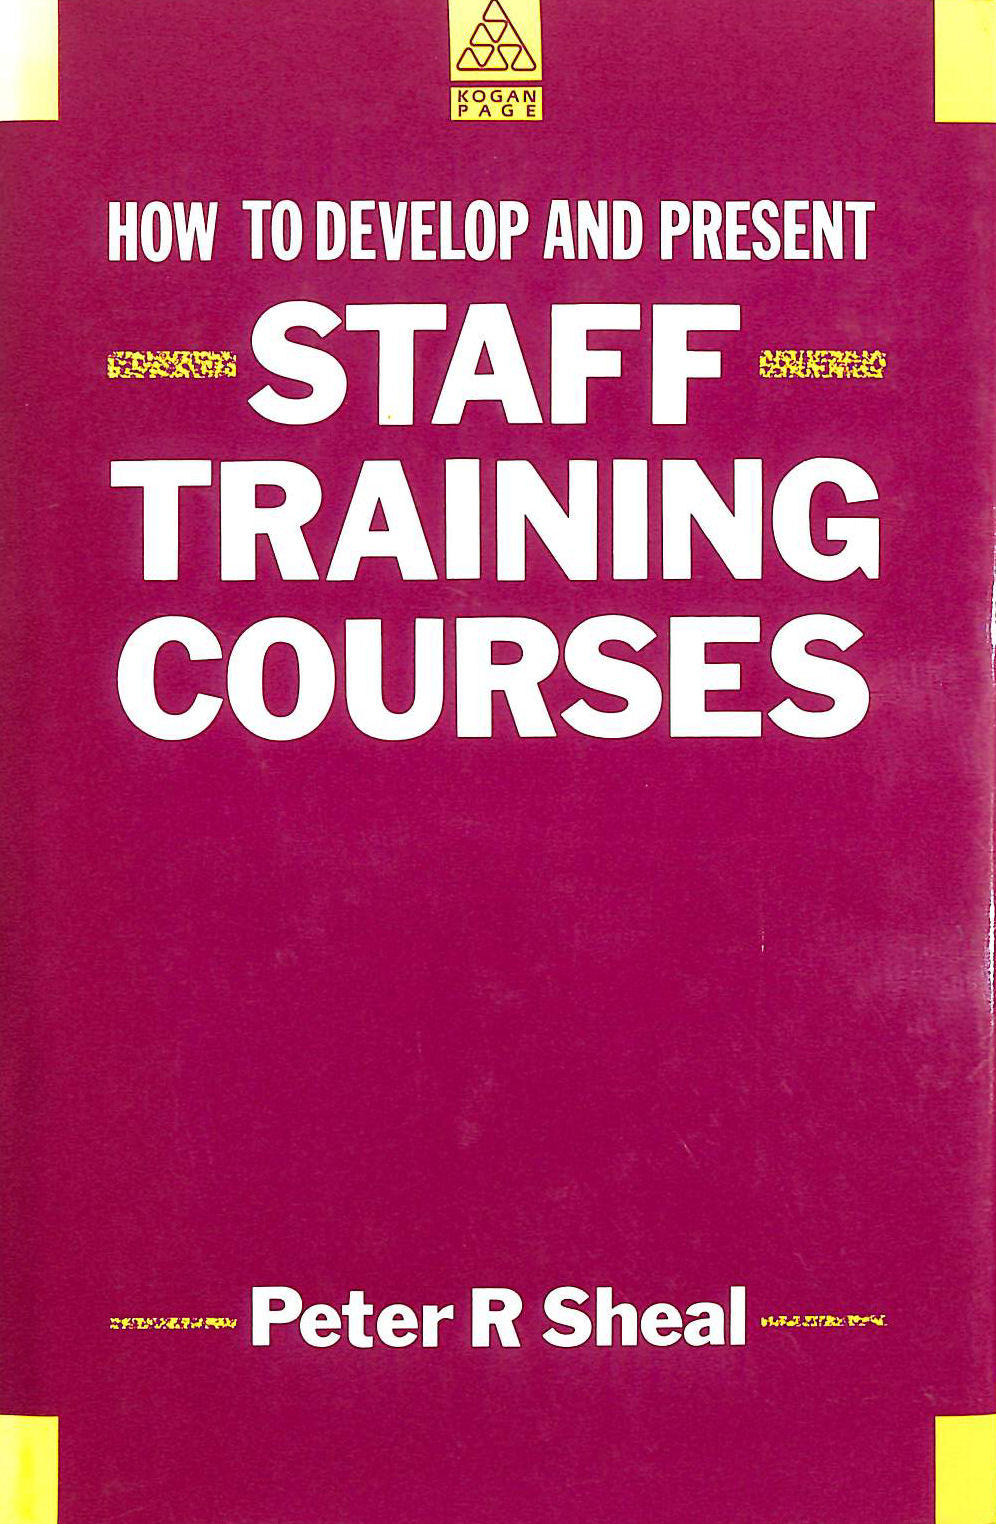 Image for Developing and Presenting Staff Training Courses